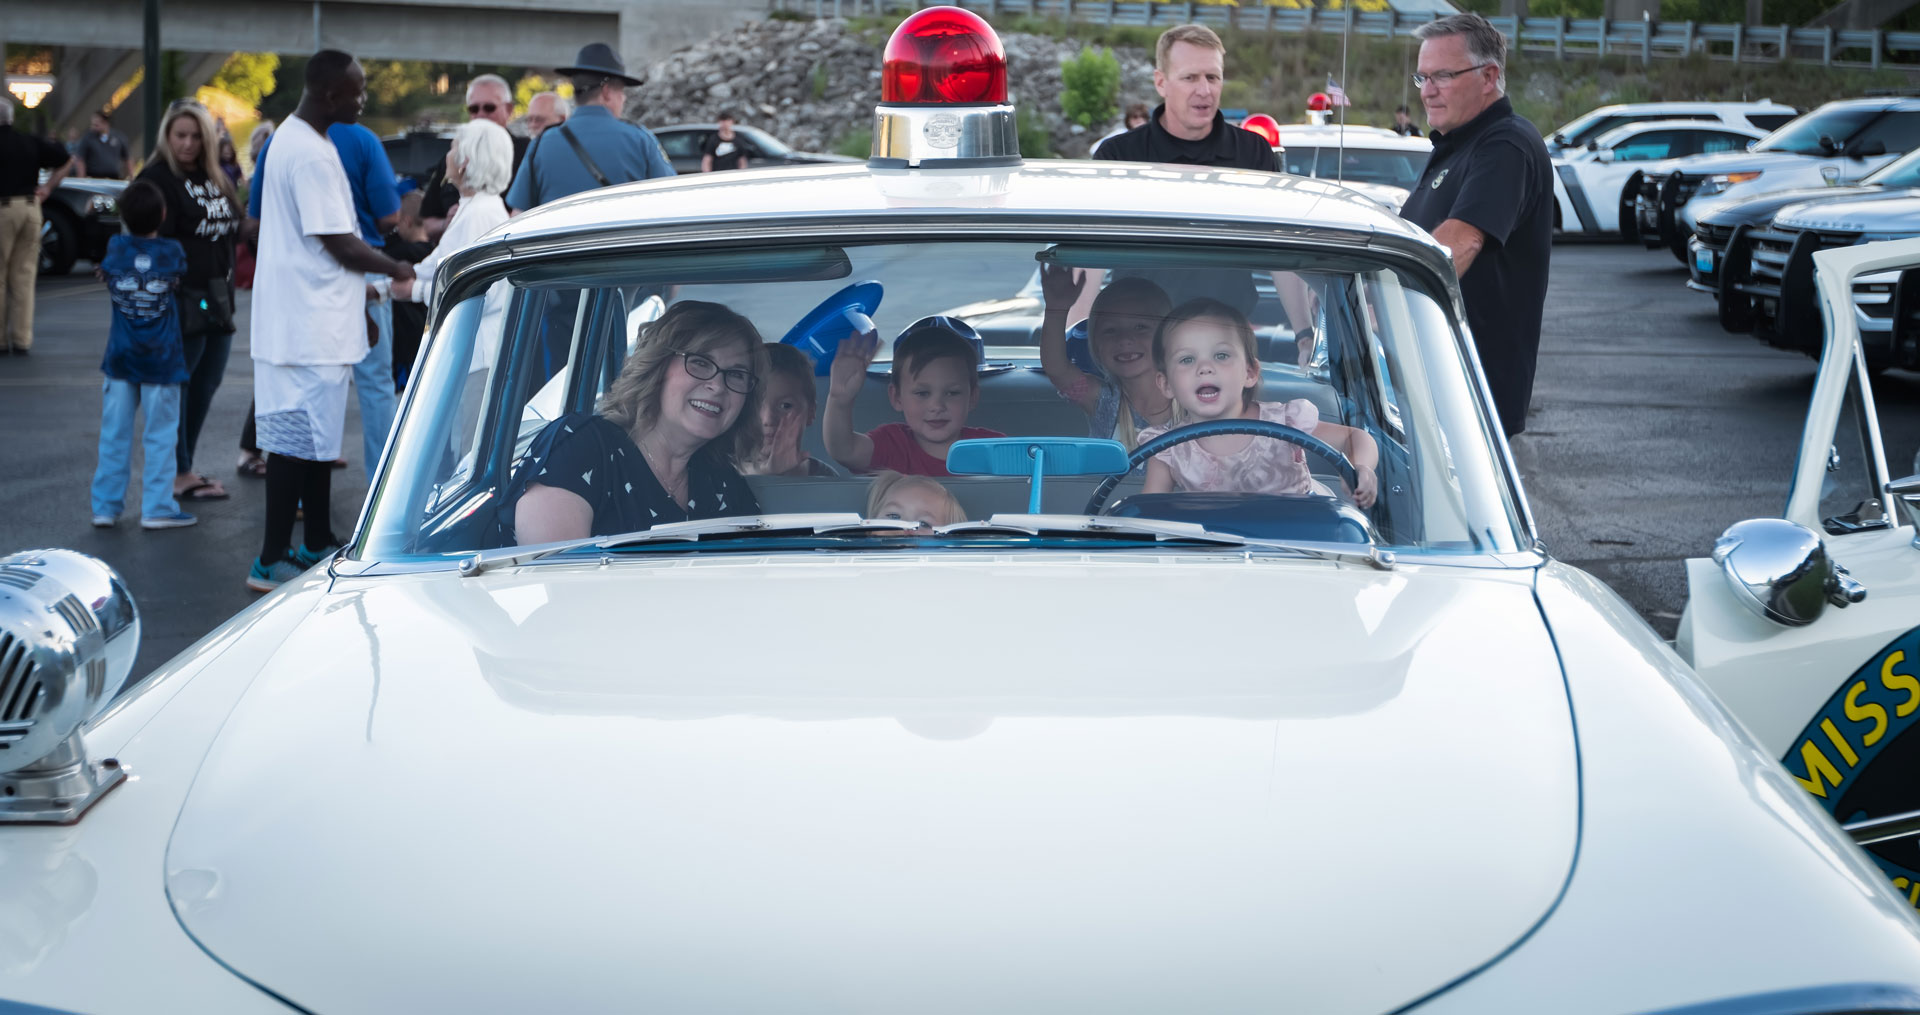 kids in classic police car